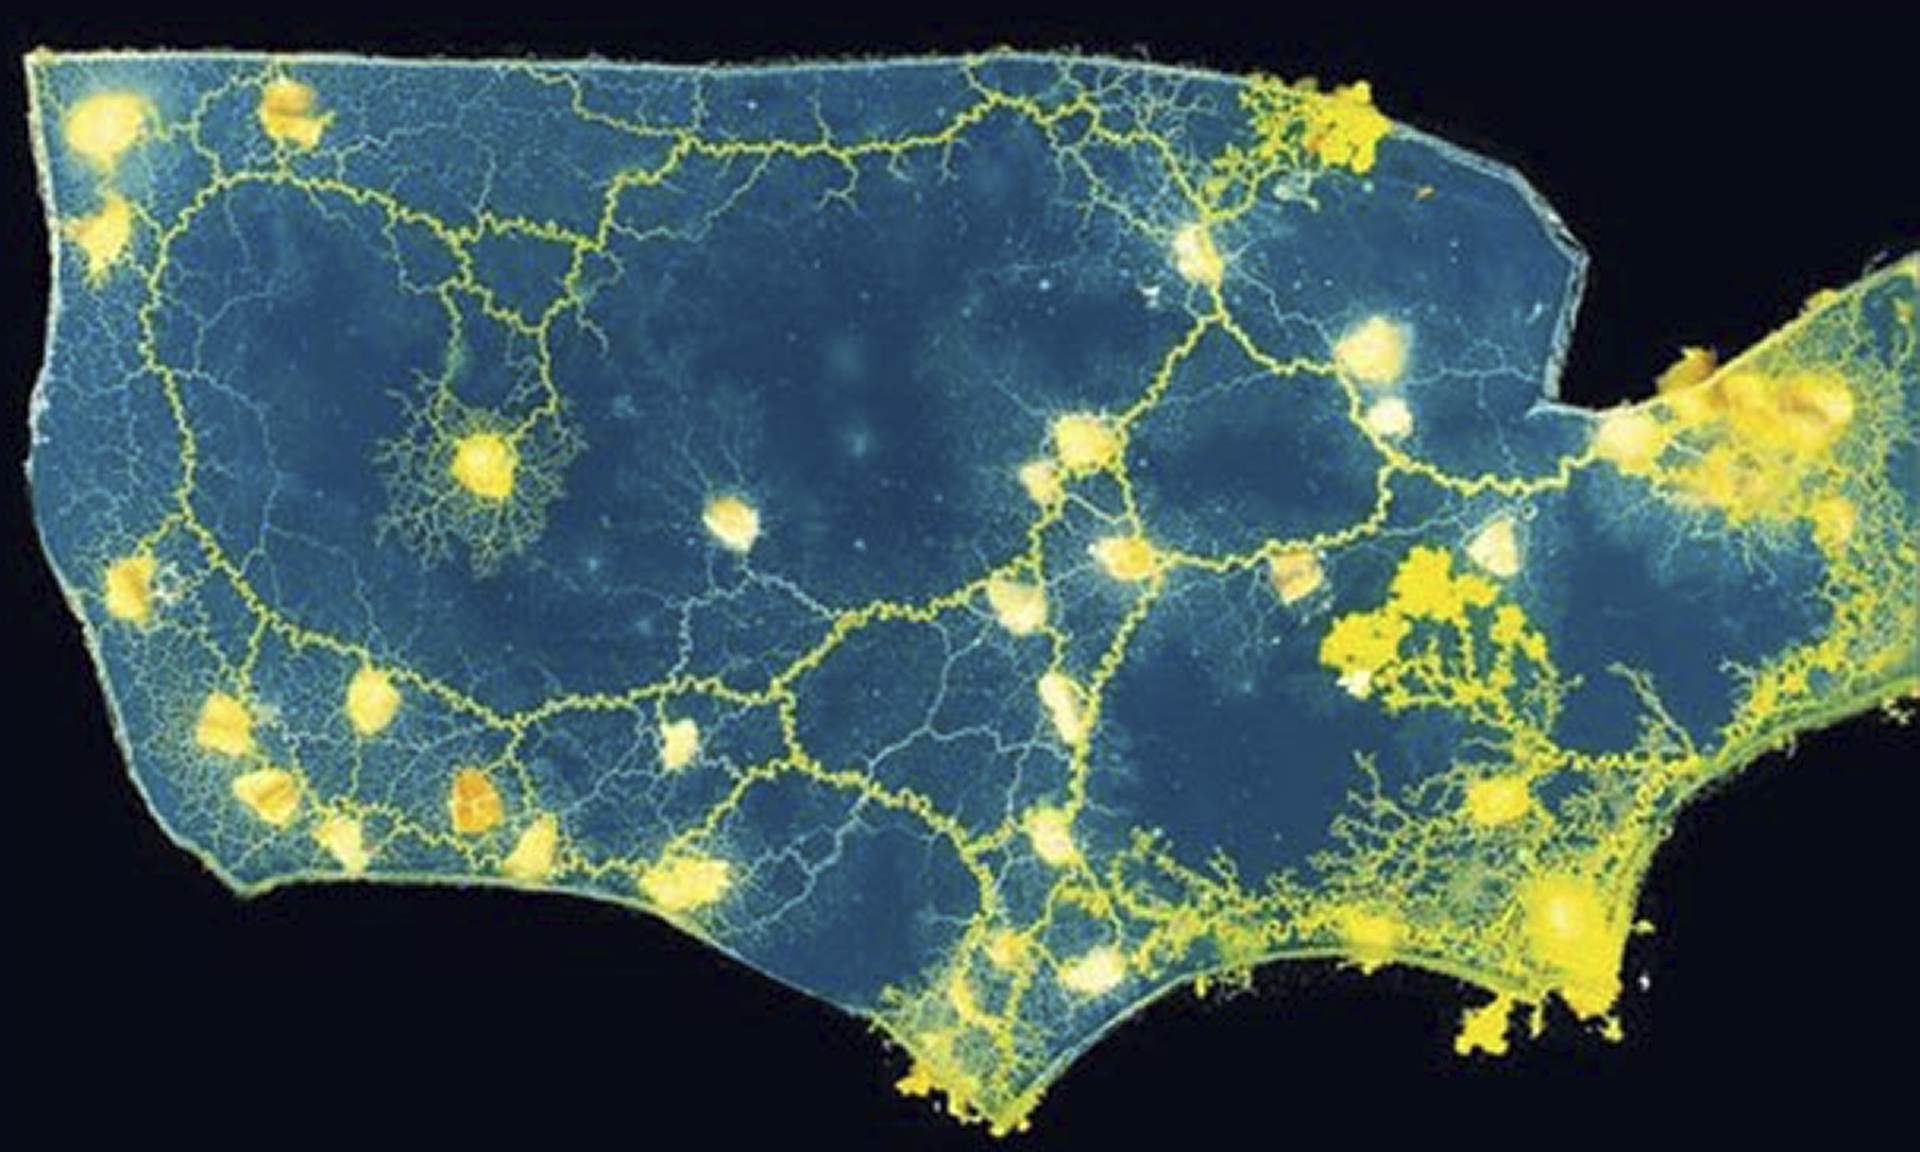 Slime-mould-maps-the-US-r-014.jpg